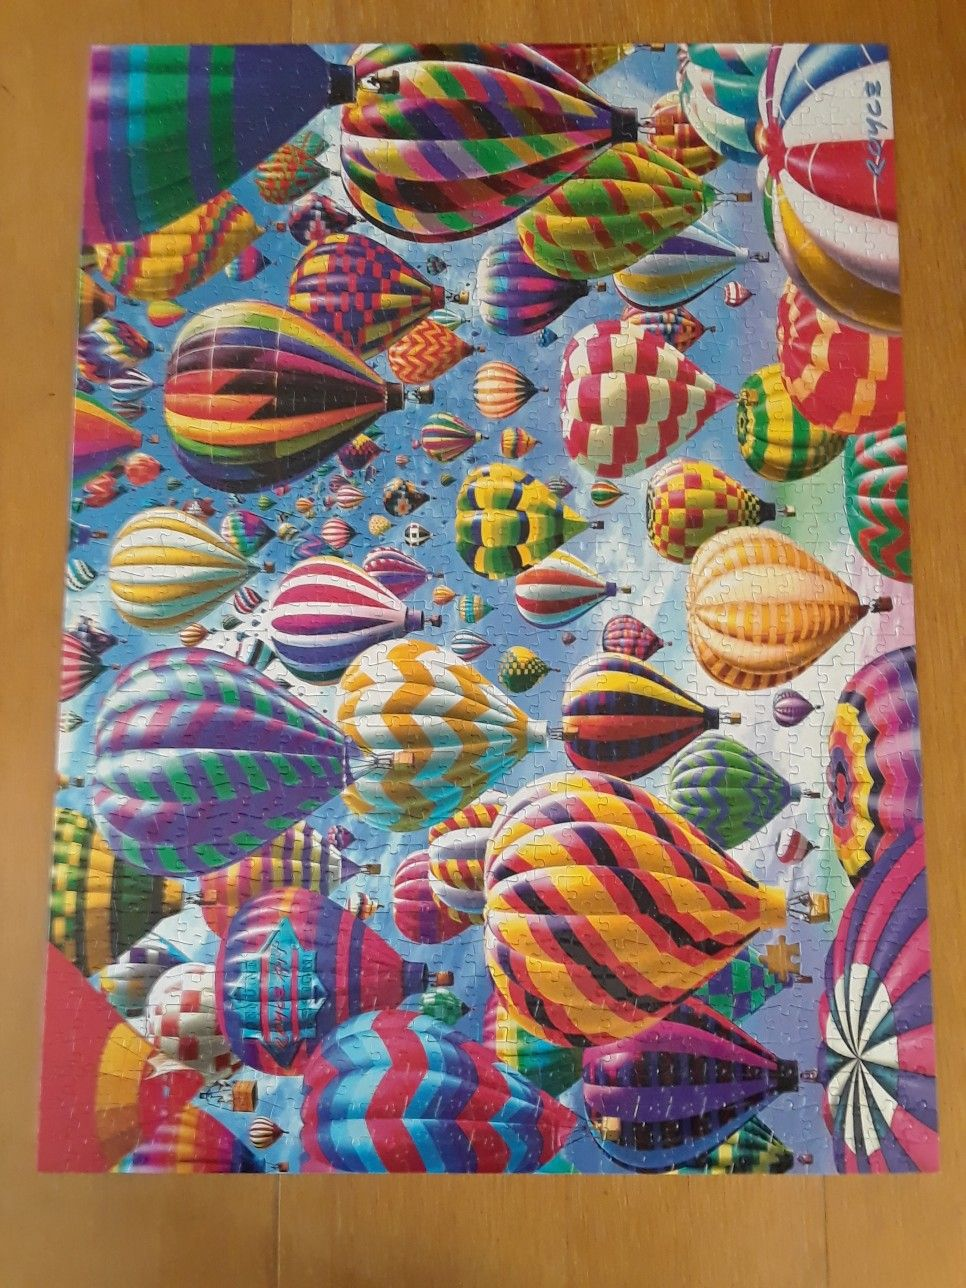 Pin by Elizabeth Muttschall on puzzles Art, Painting